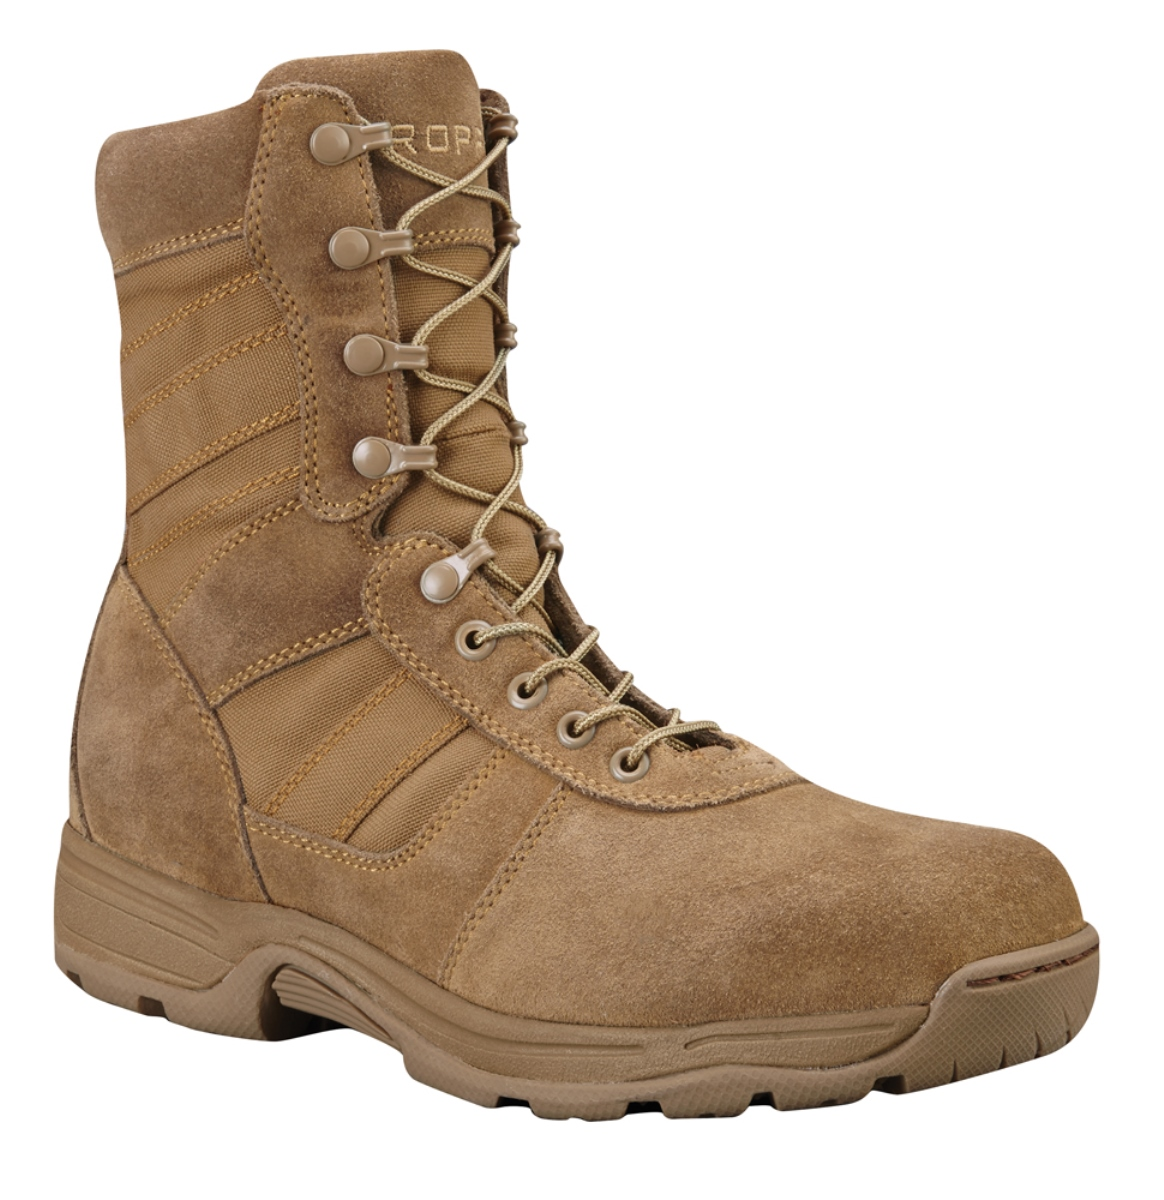 "Propper Mens Water-Resistant Suede Upper Series 100 8"" Boots NEW"